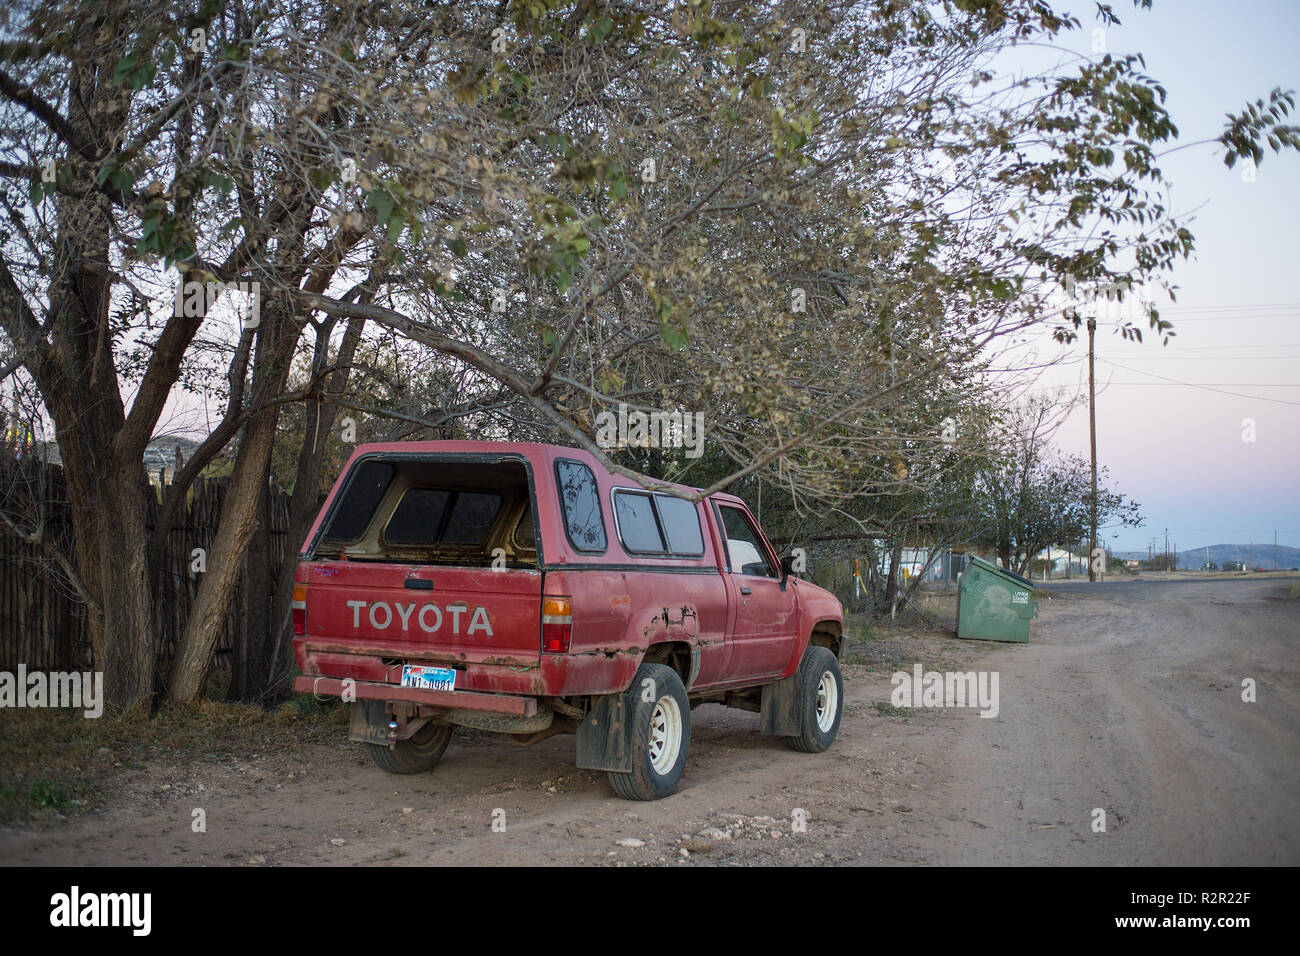 Rusting Toyota pickup on a street of Alpine, Texas. - Stock Image